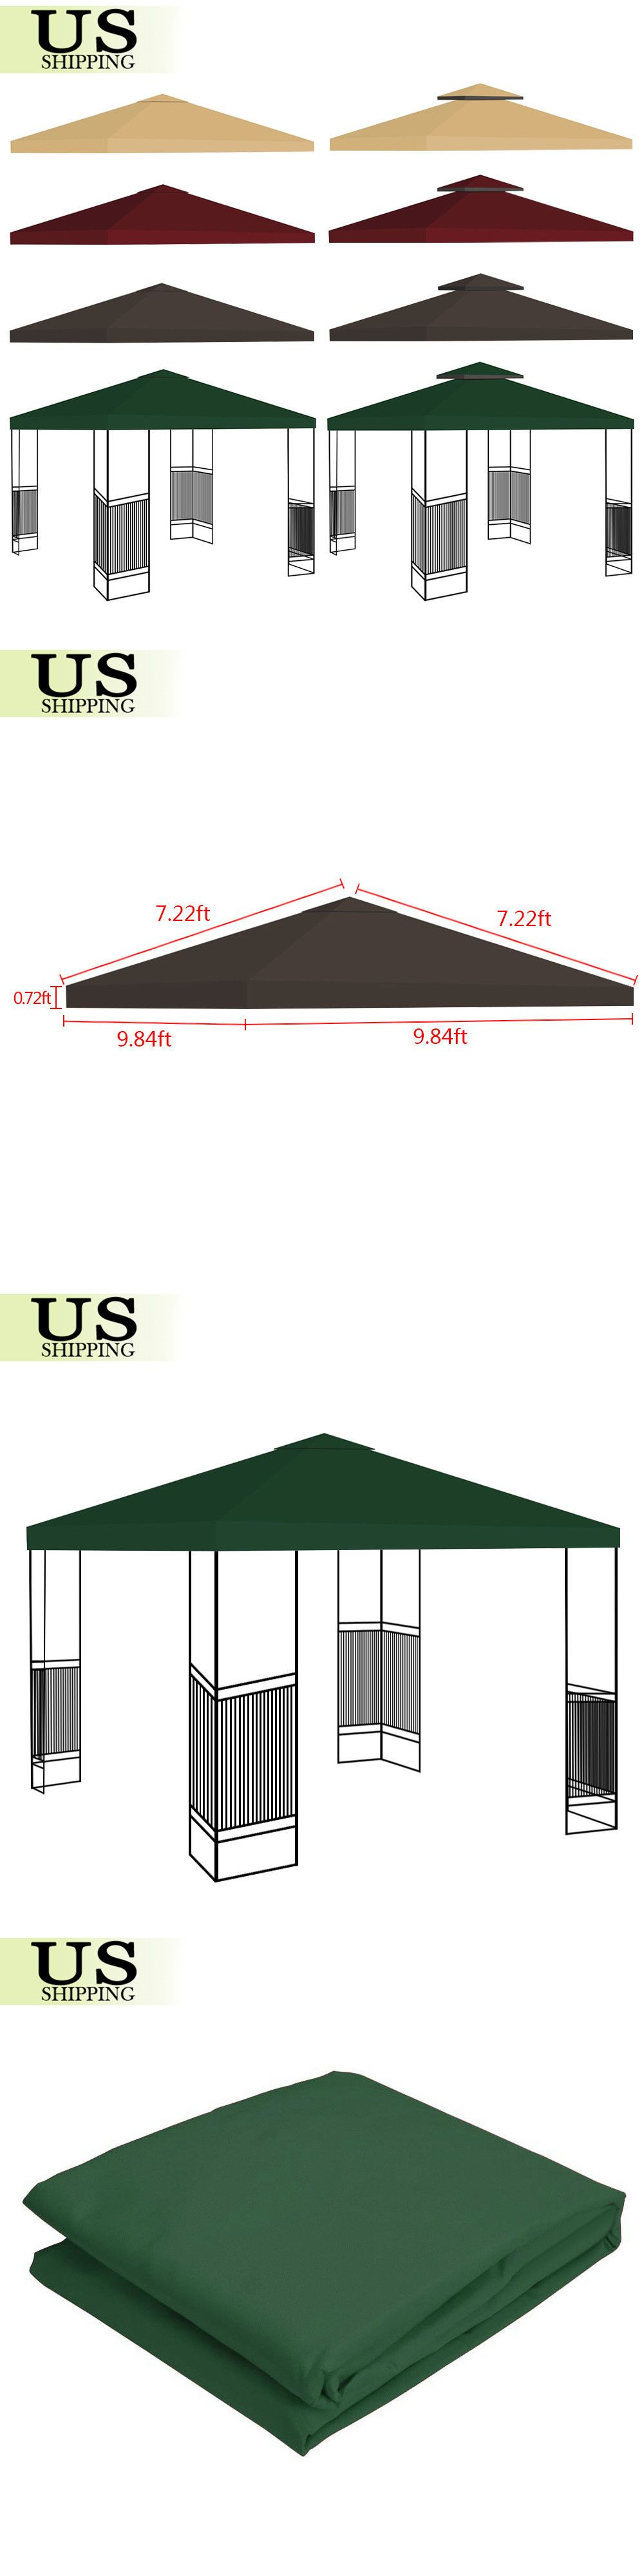 Awnings And Canopies 180992 10 X10 Gazebo Tent Top Canopy Replacement Sunshade Patio Outdoor Garden Cover Buy It Now O Gazebo Tent Outdoor Sun Shade Canopy